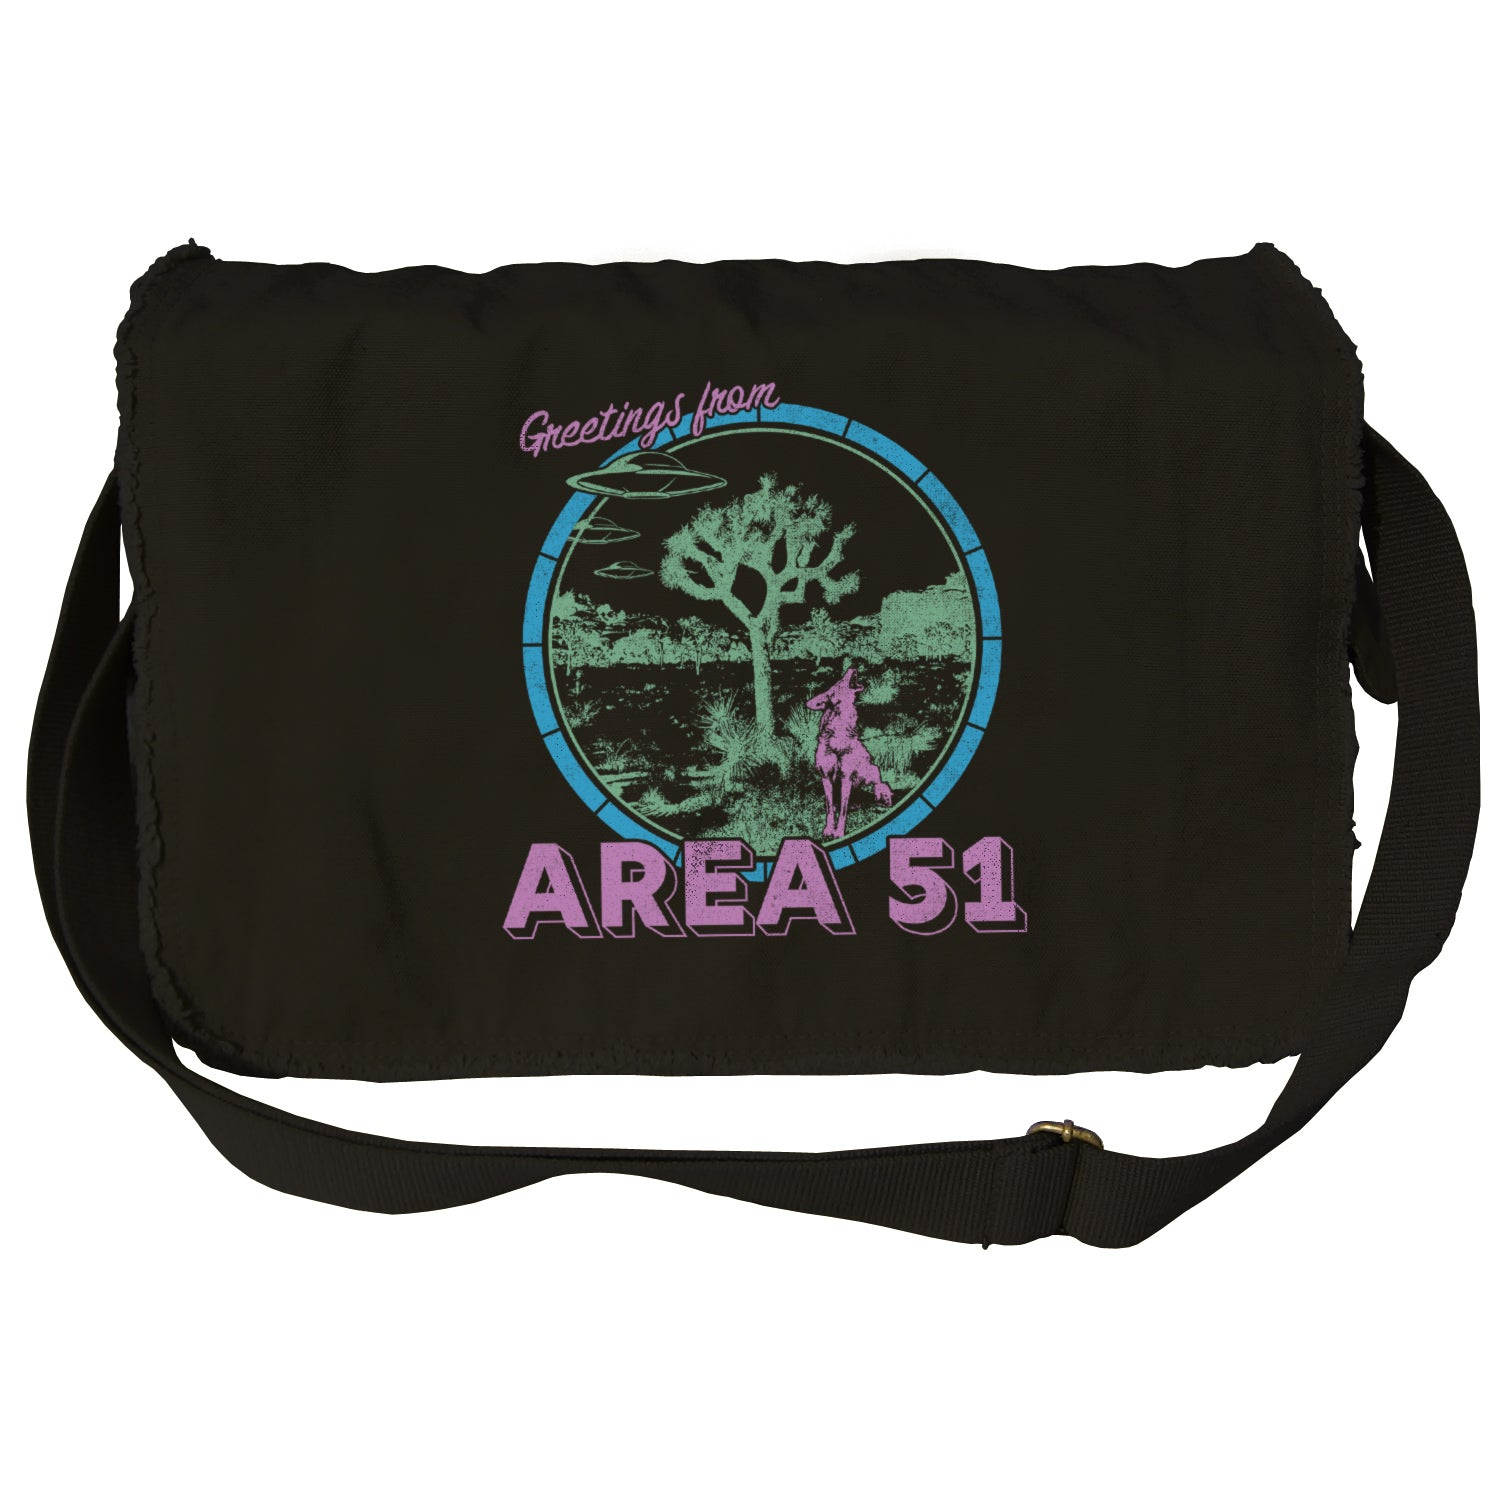 Greetings from Area 51 Messenger Bag